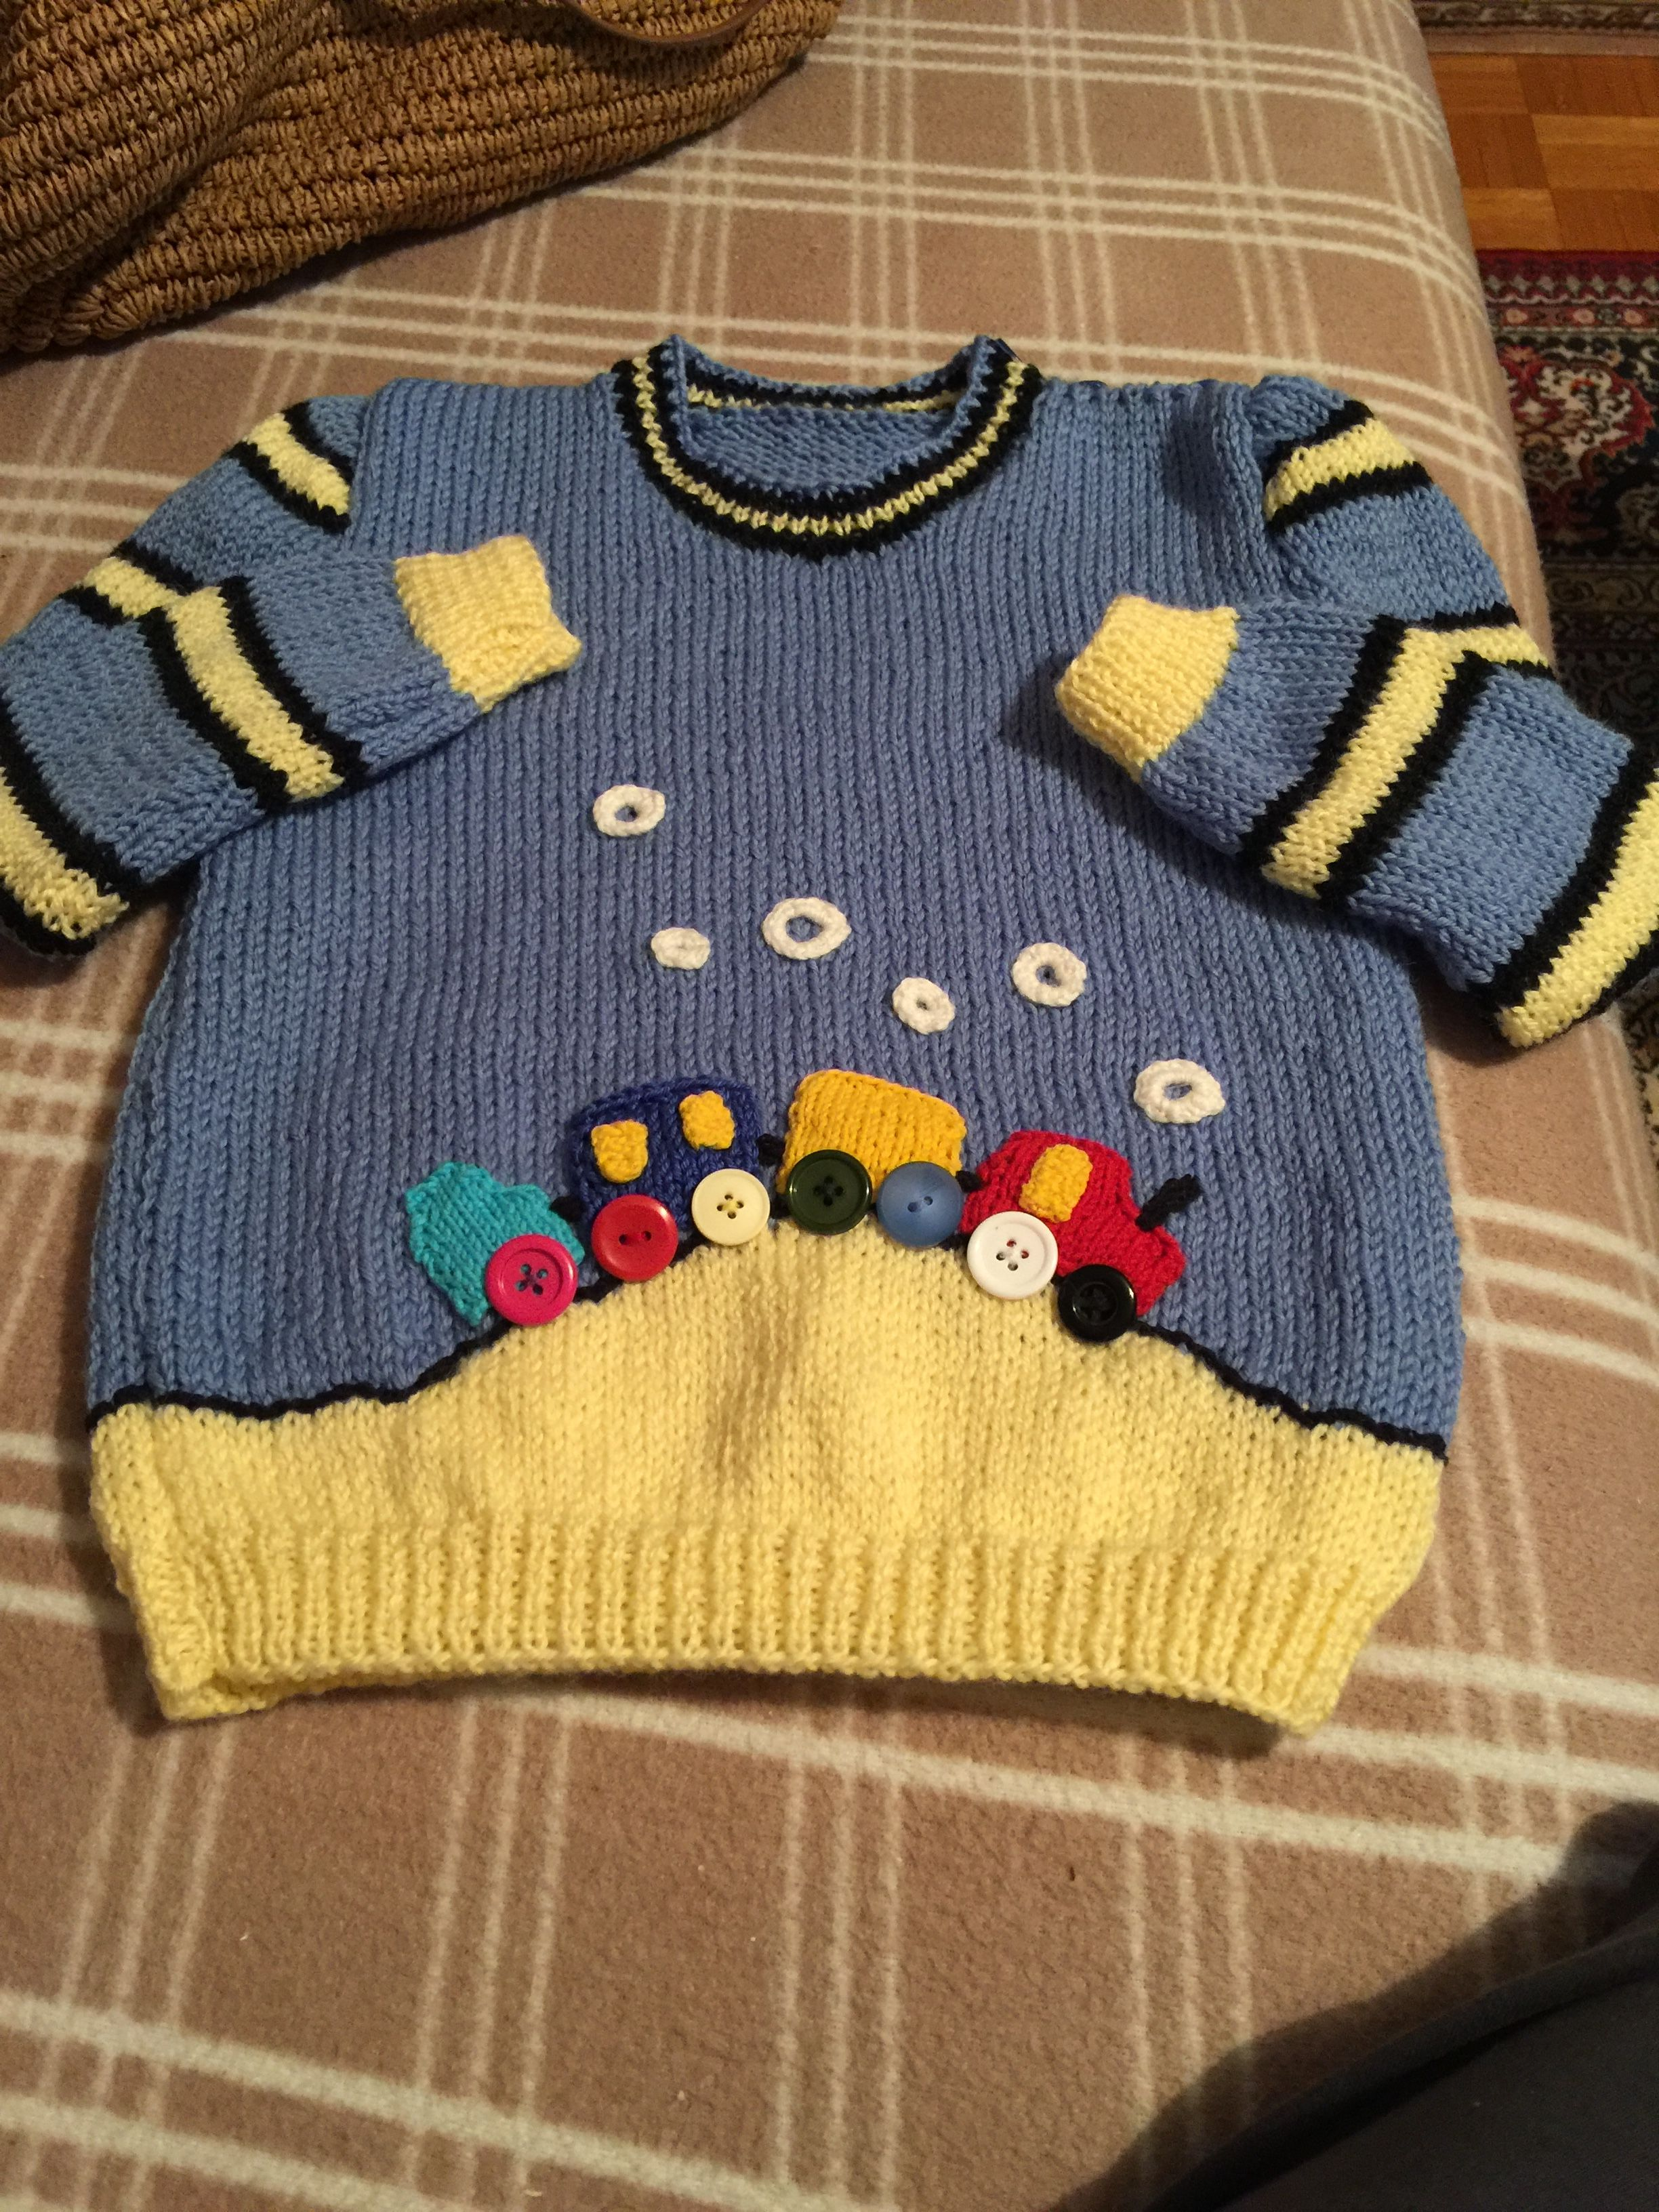 Baby Boy Sweater - 12 to 18 Month Size Wool Pullover With Colorful ...